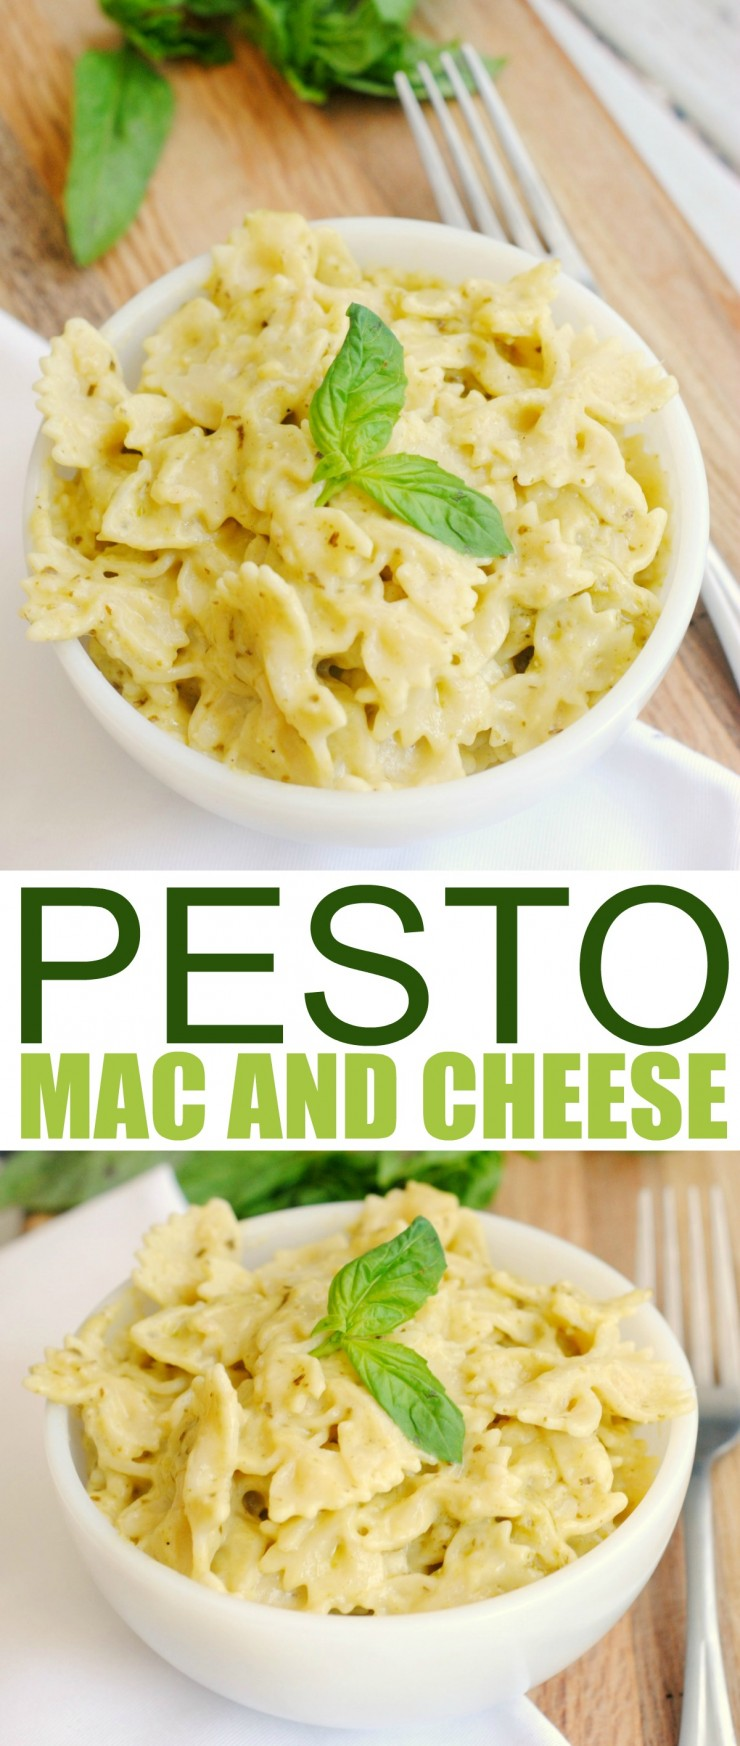 This Pesto Stovetop Mac and Cheese is a super easy gourmet meal idea!